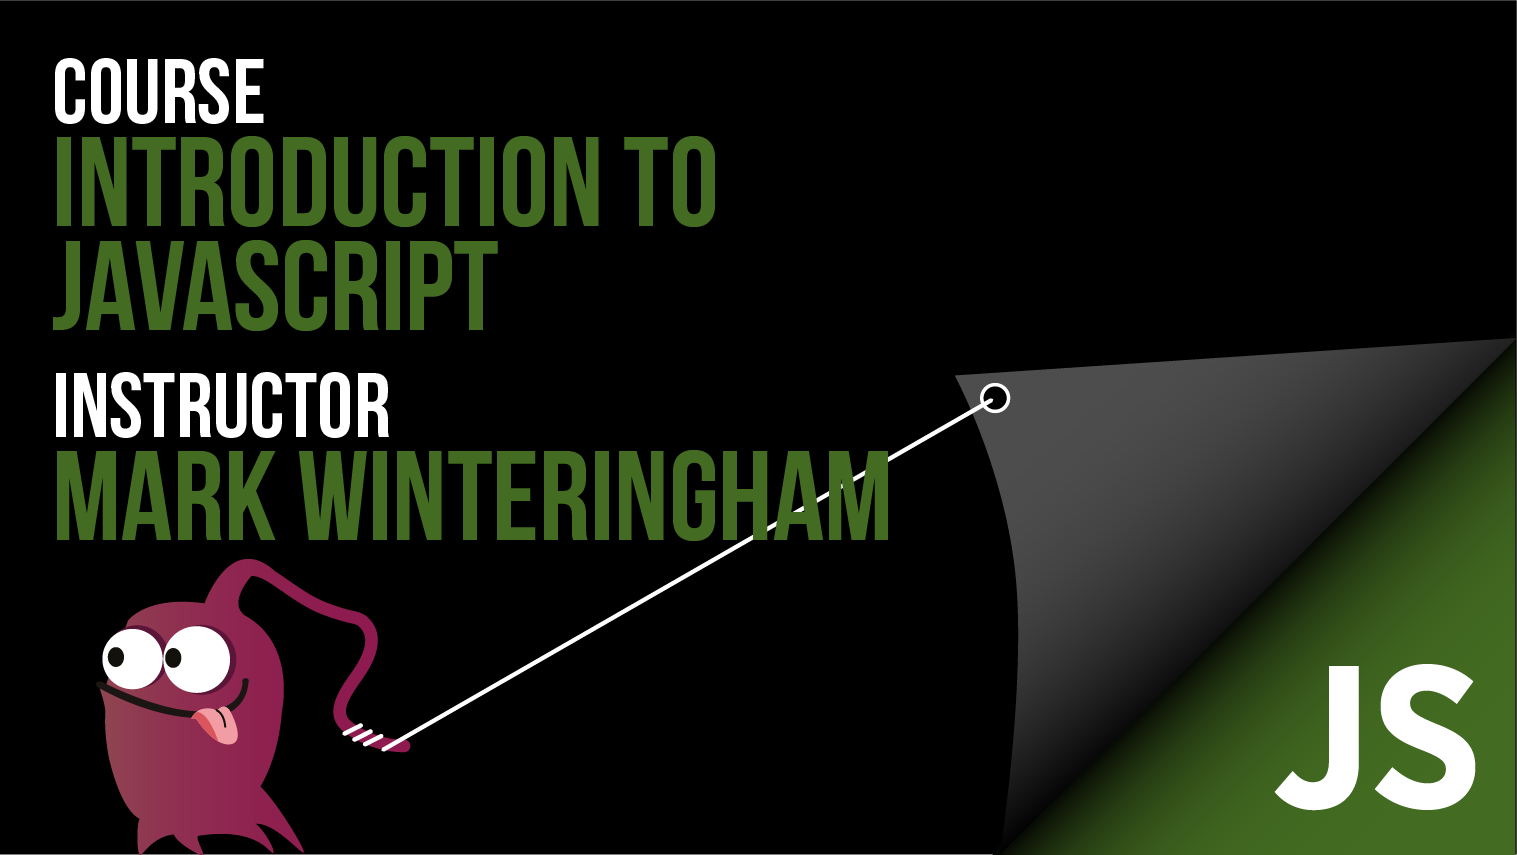 Introduction to JavaScript - Mark Winteringham